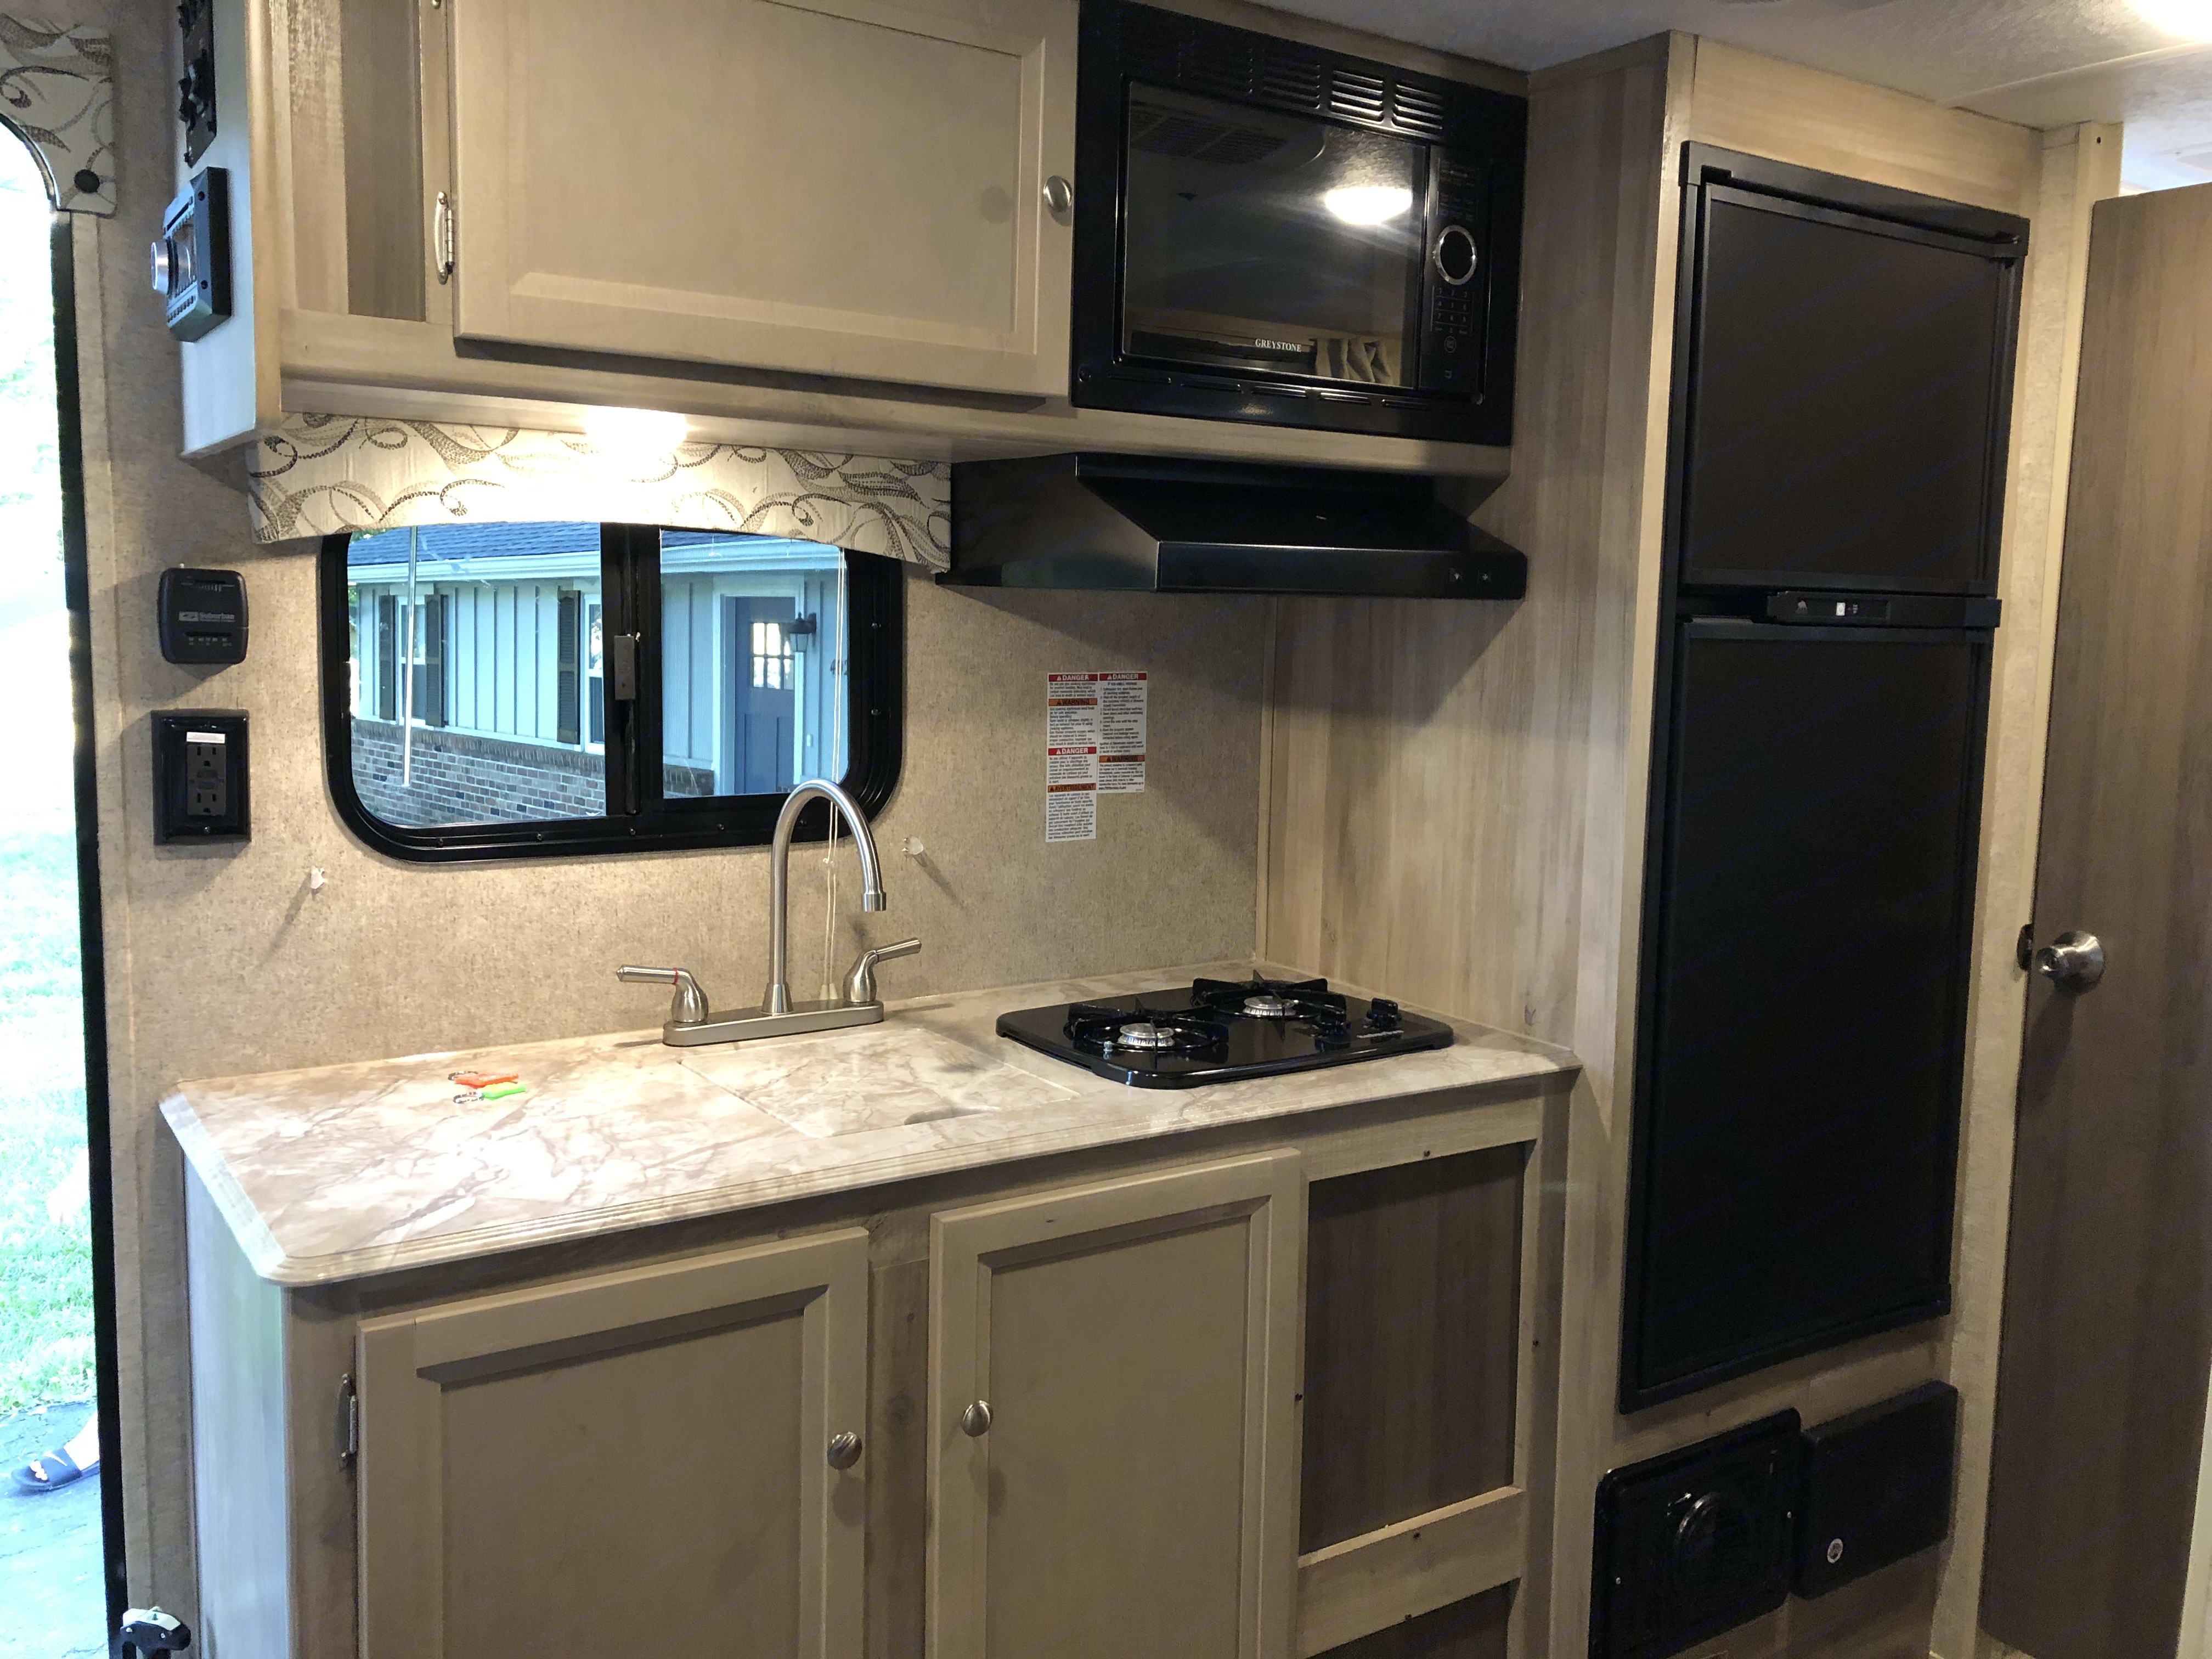 Great size kitchen with full kitchen and freezer. Coachmen Catalina 2020